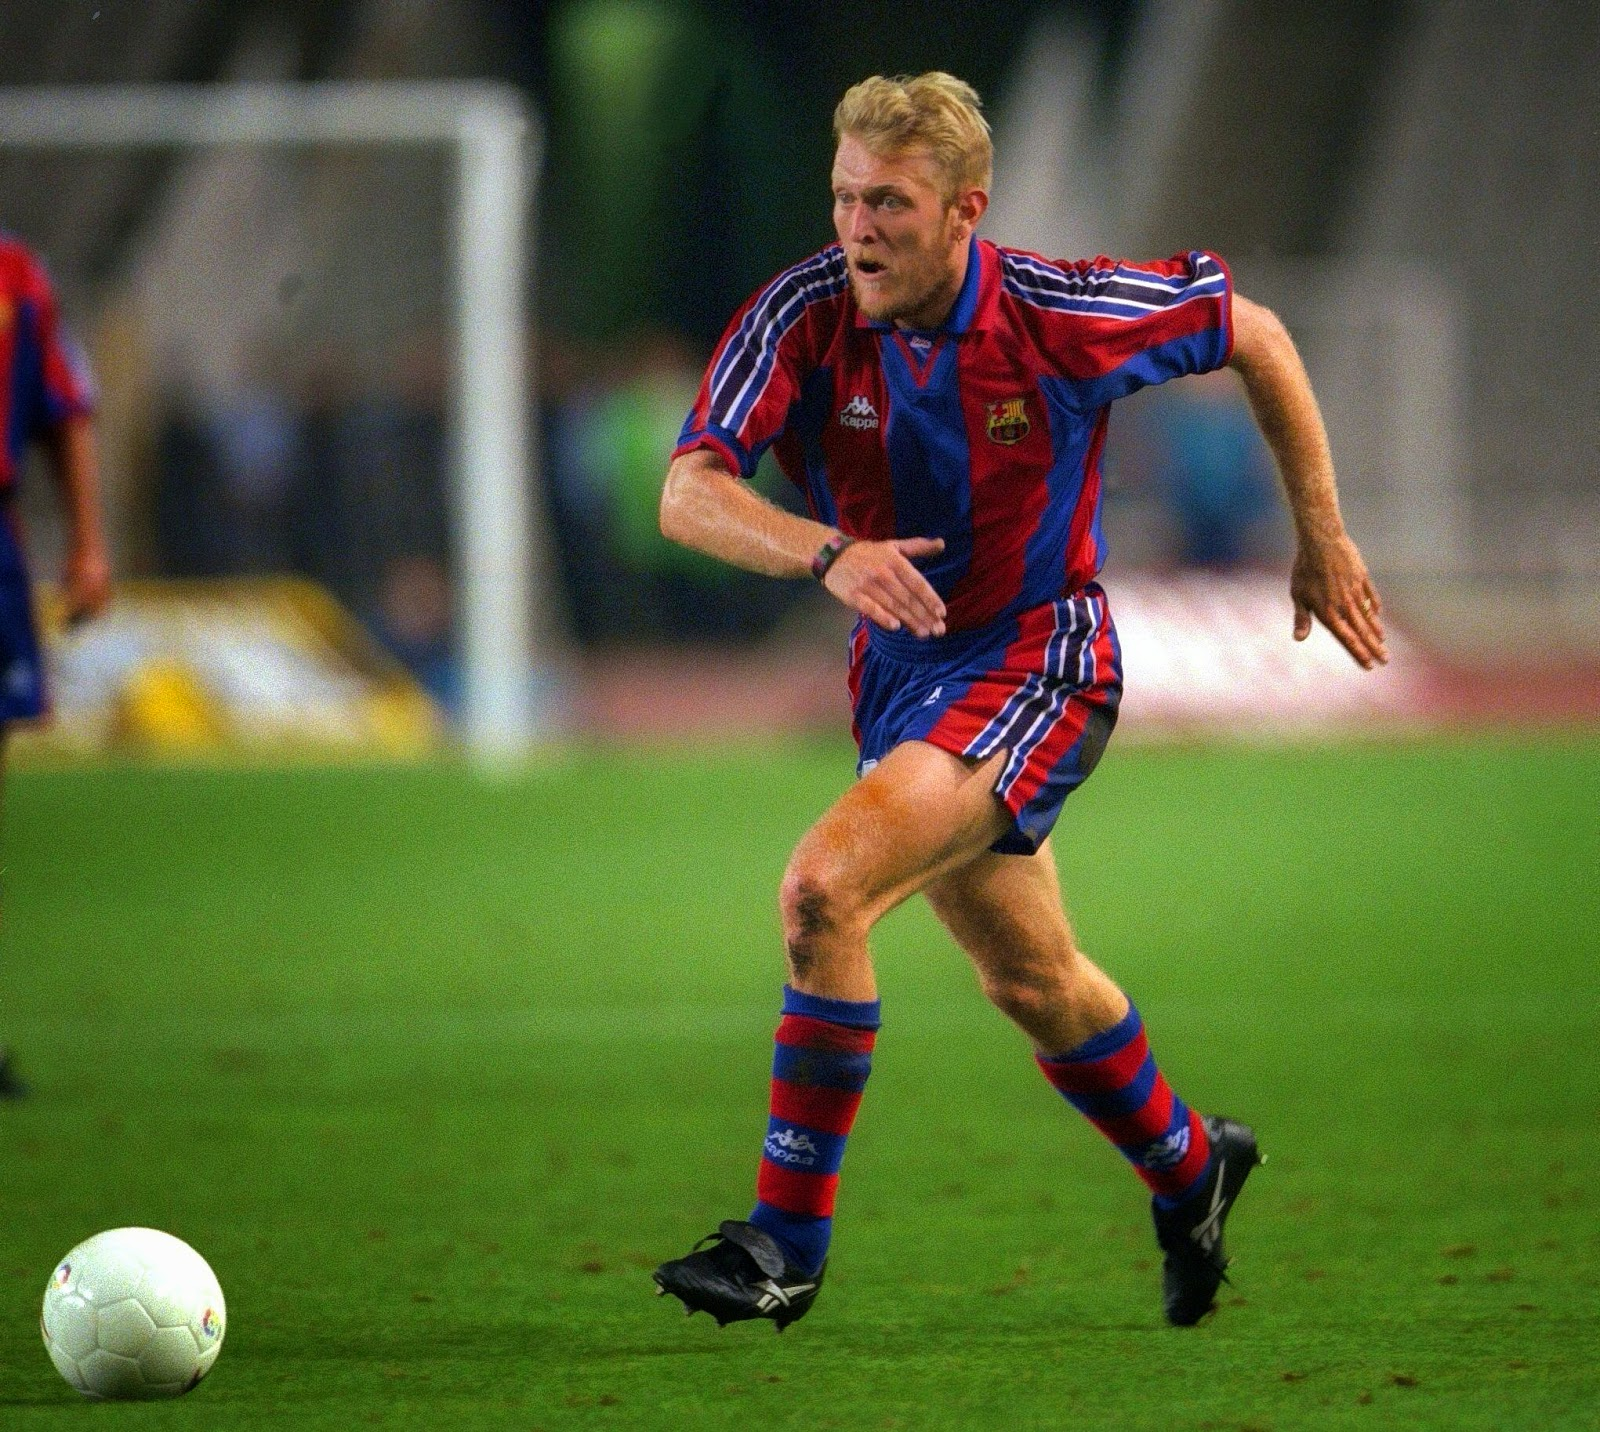 ... do Robert Prosinecki